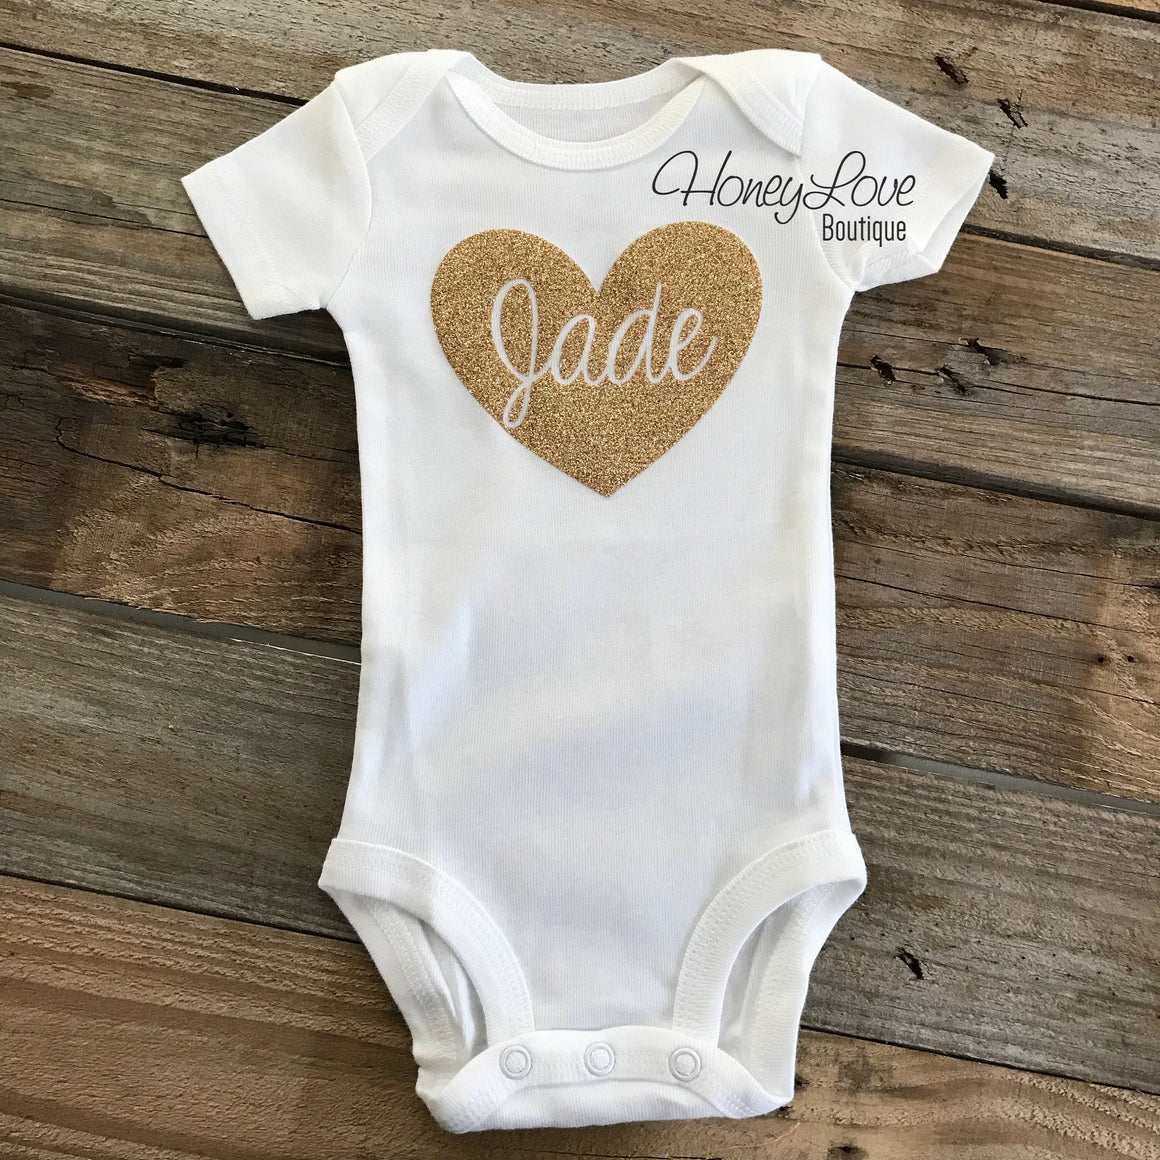 PERSONALIZED Name inside Heart - Vintage Pink and Gold/Silver/Rose Gold glitter - HoneyLoveBoutique